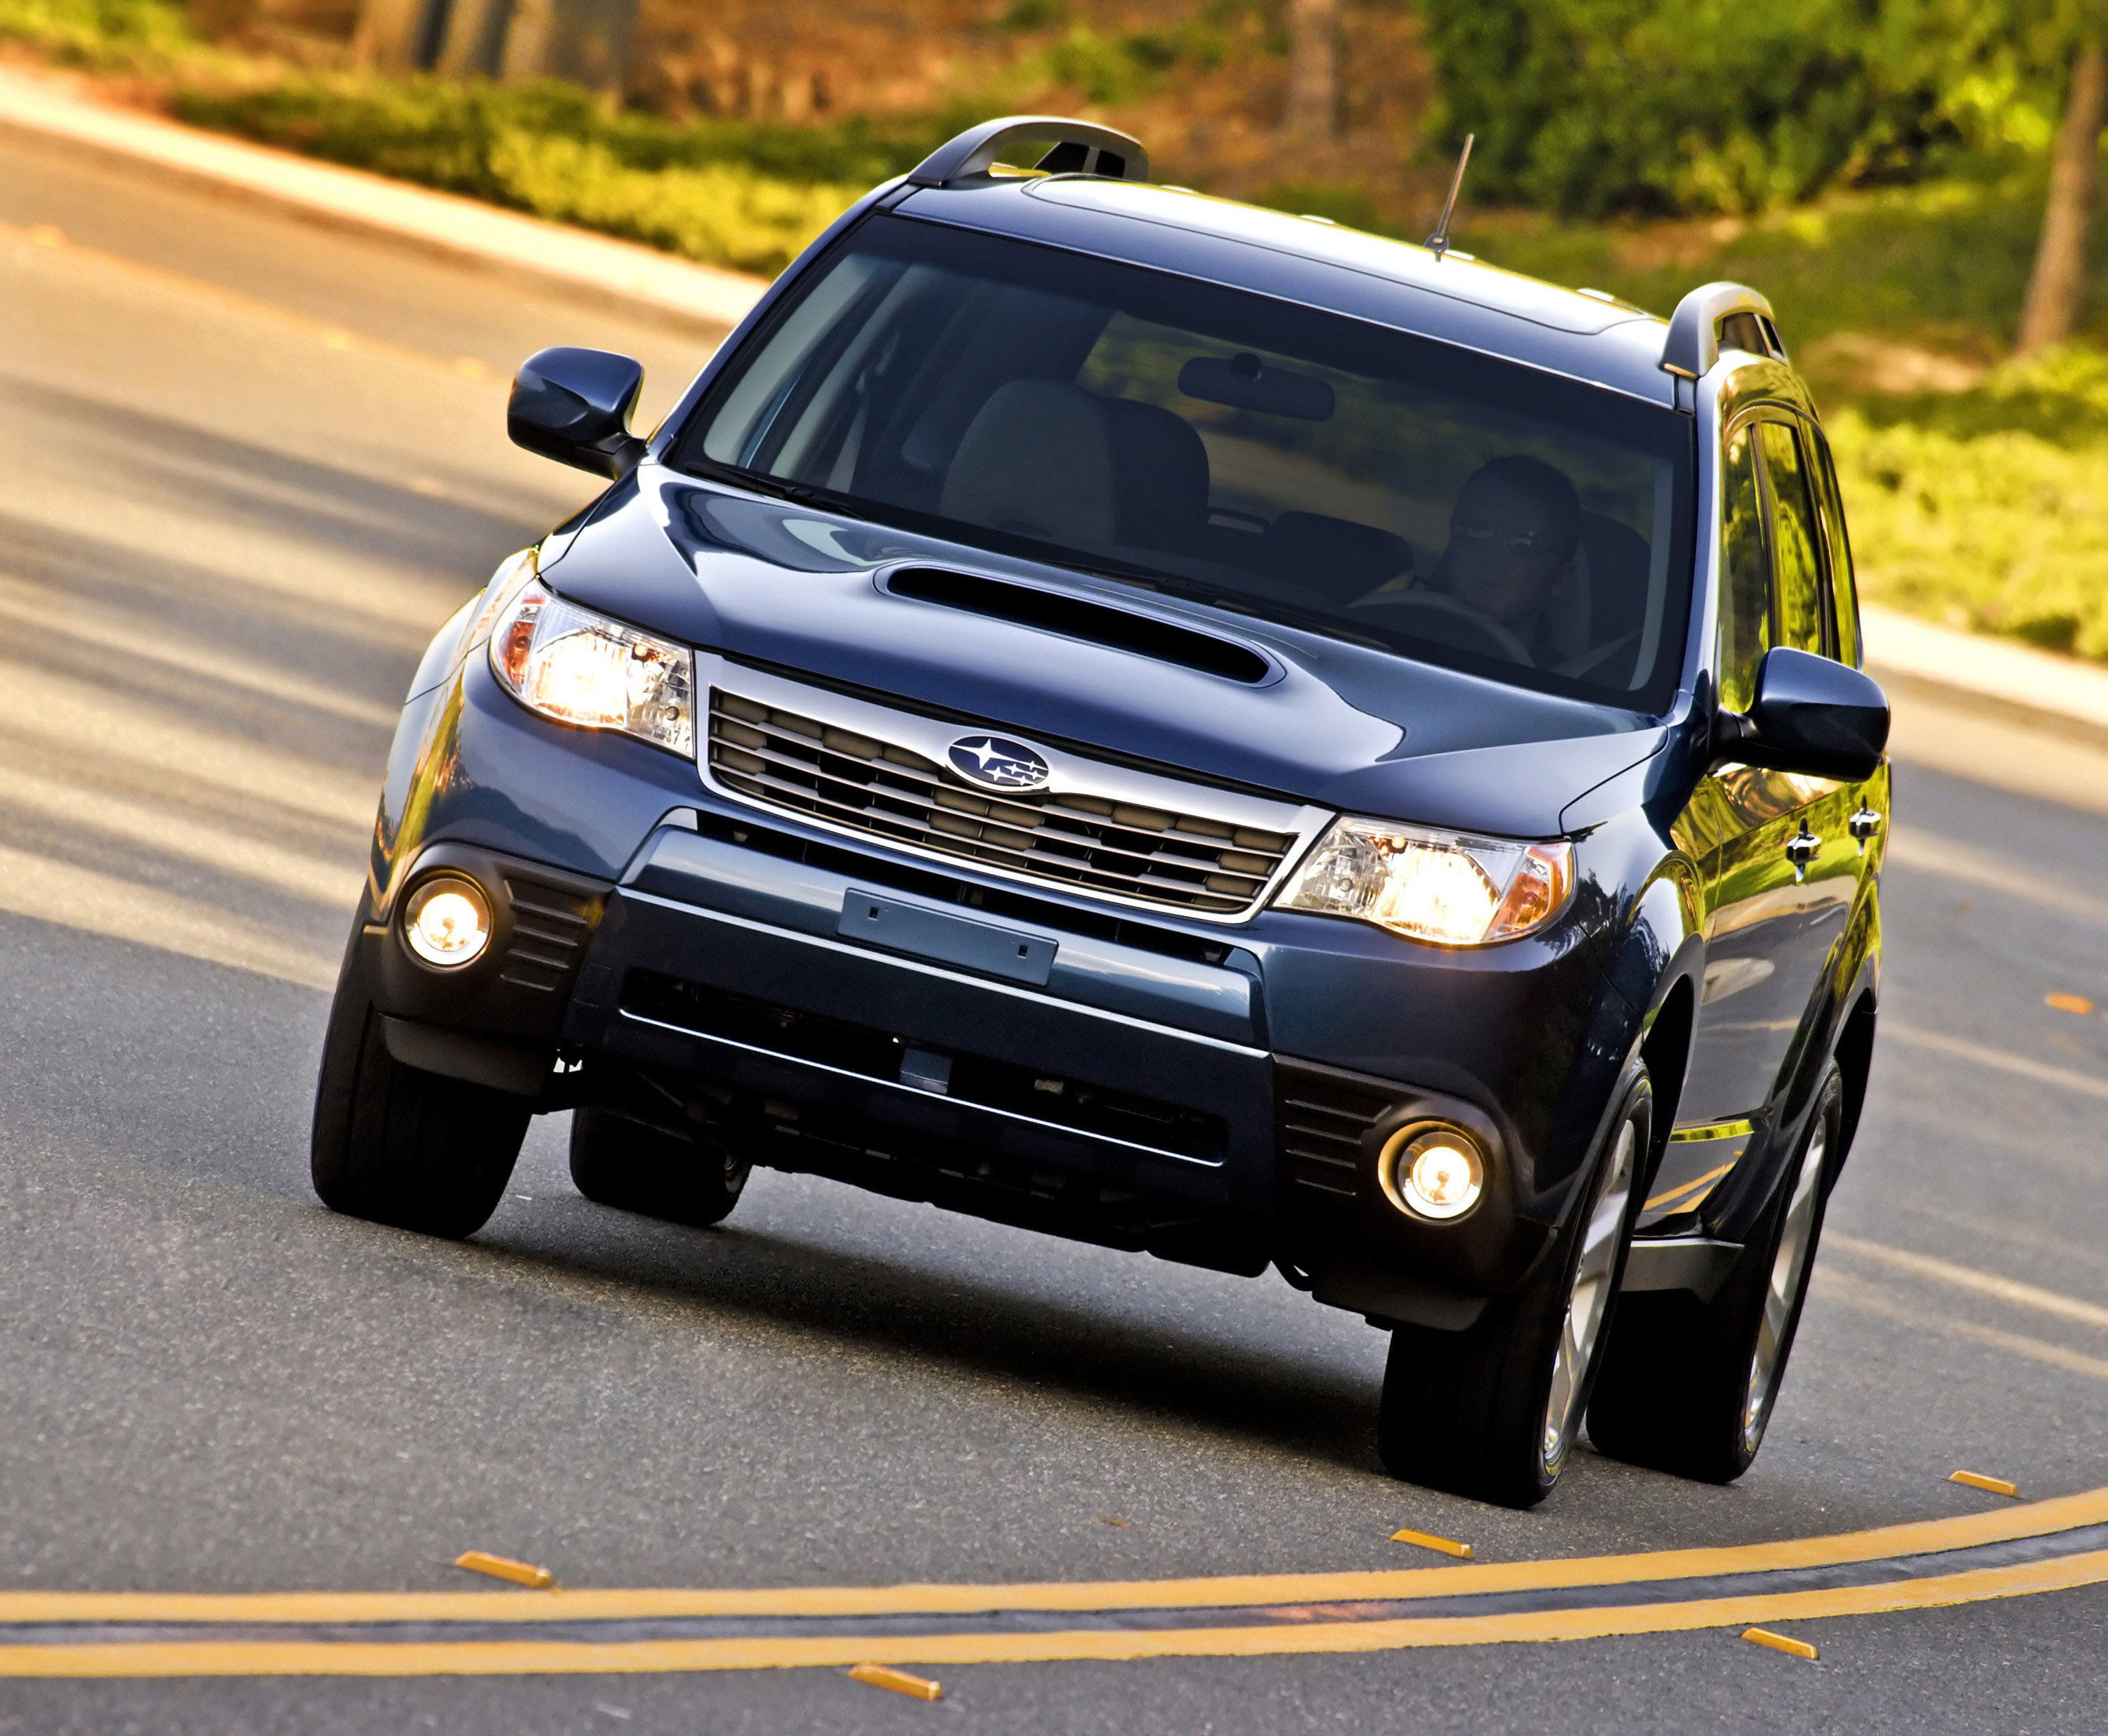 2010 Subaru Forester 2 5XT Picture